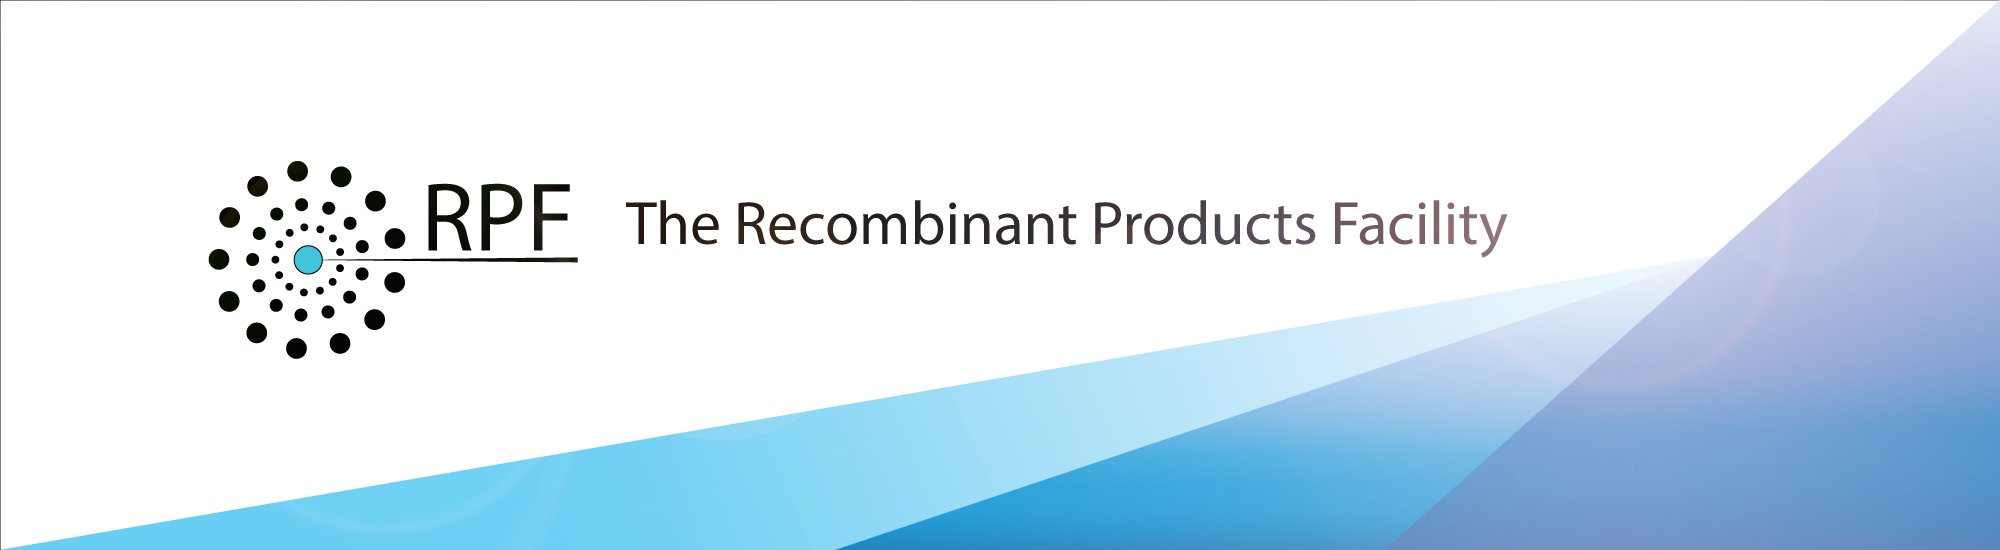 Recombinant products facility